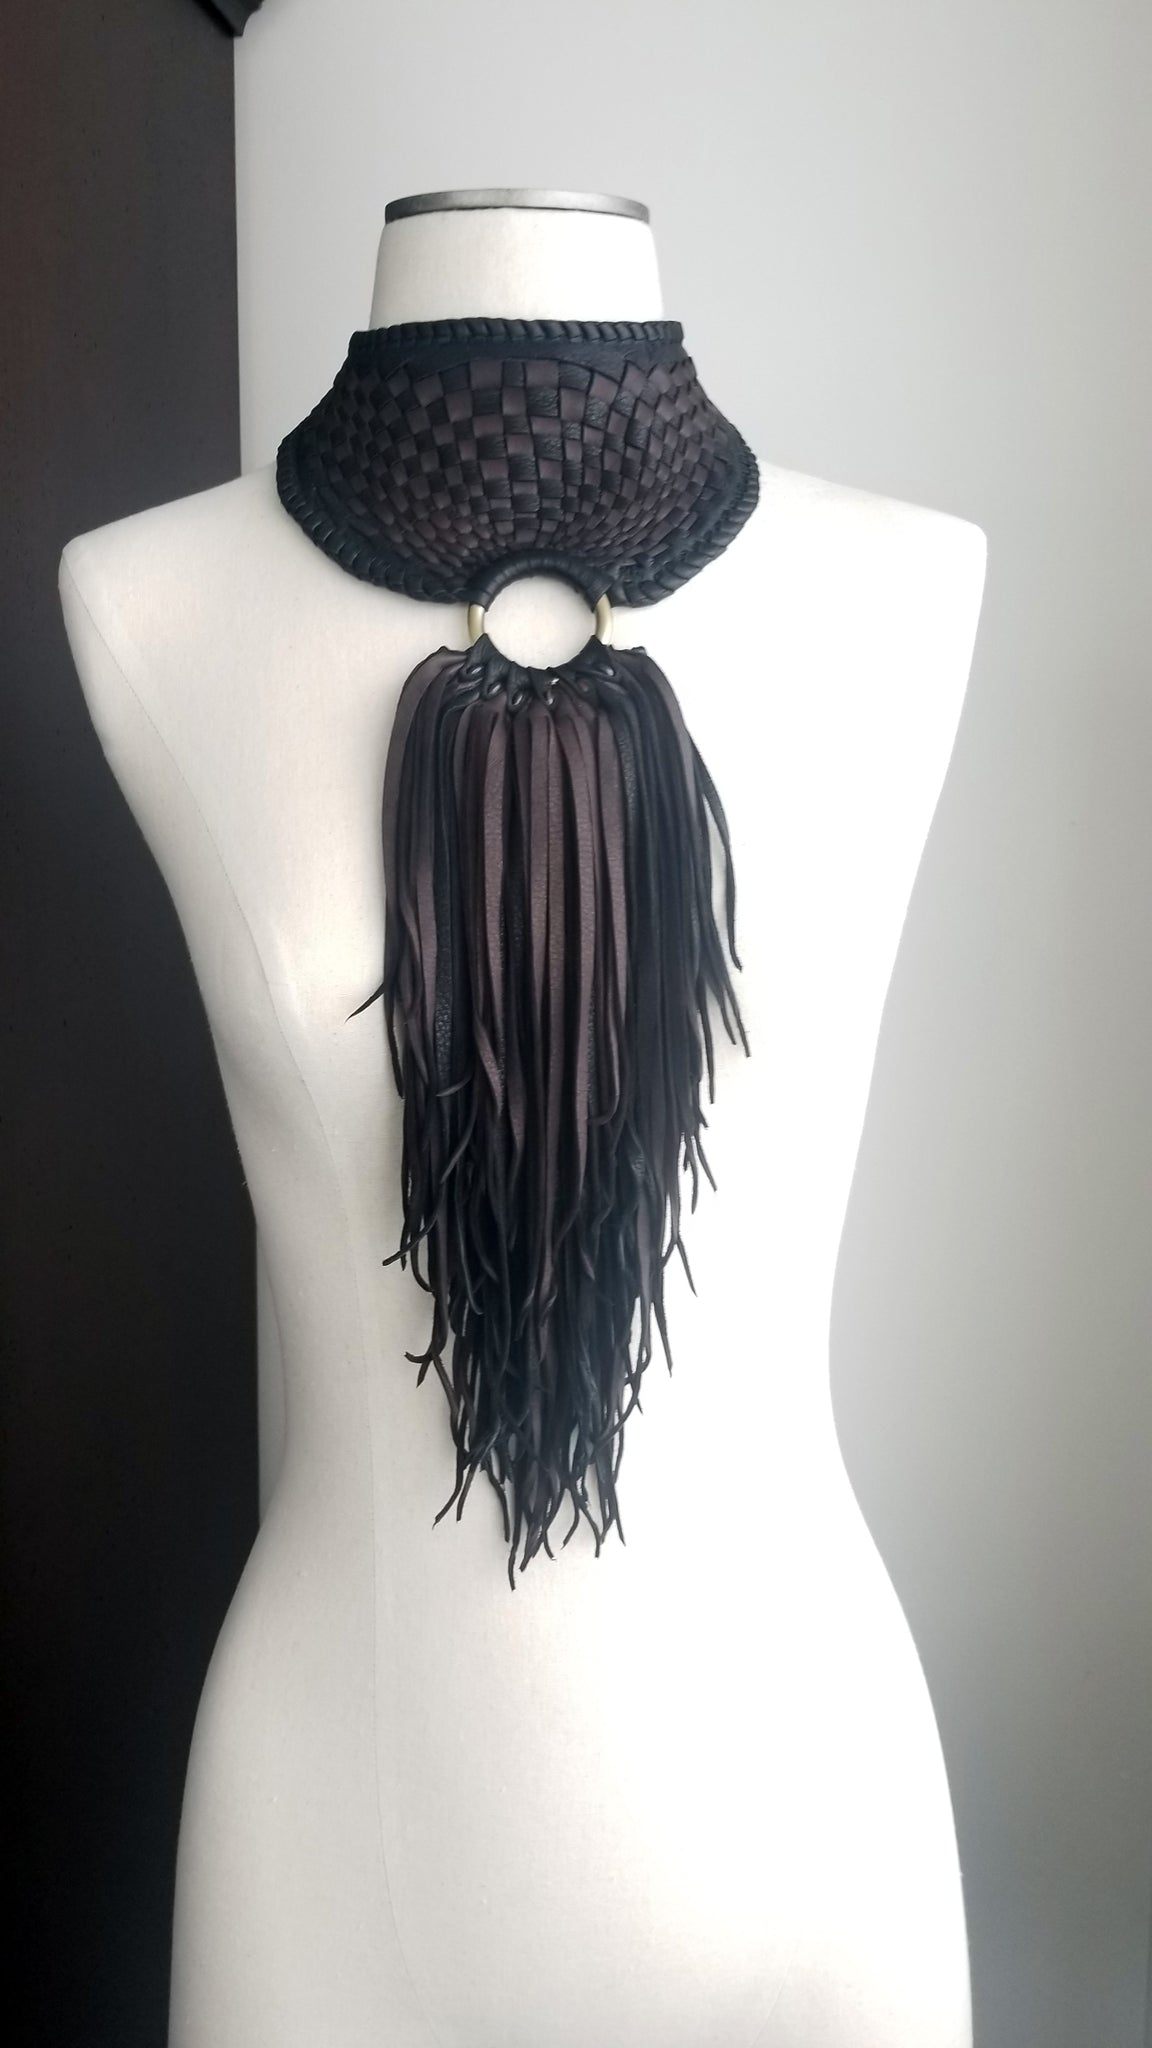 Zanta African Inspired, Braided Leather Statement Necklace, Bib Neckpiece, woven collar, fringe and tassels, on a dress form form